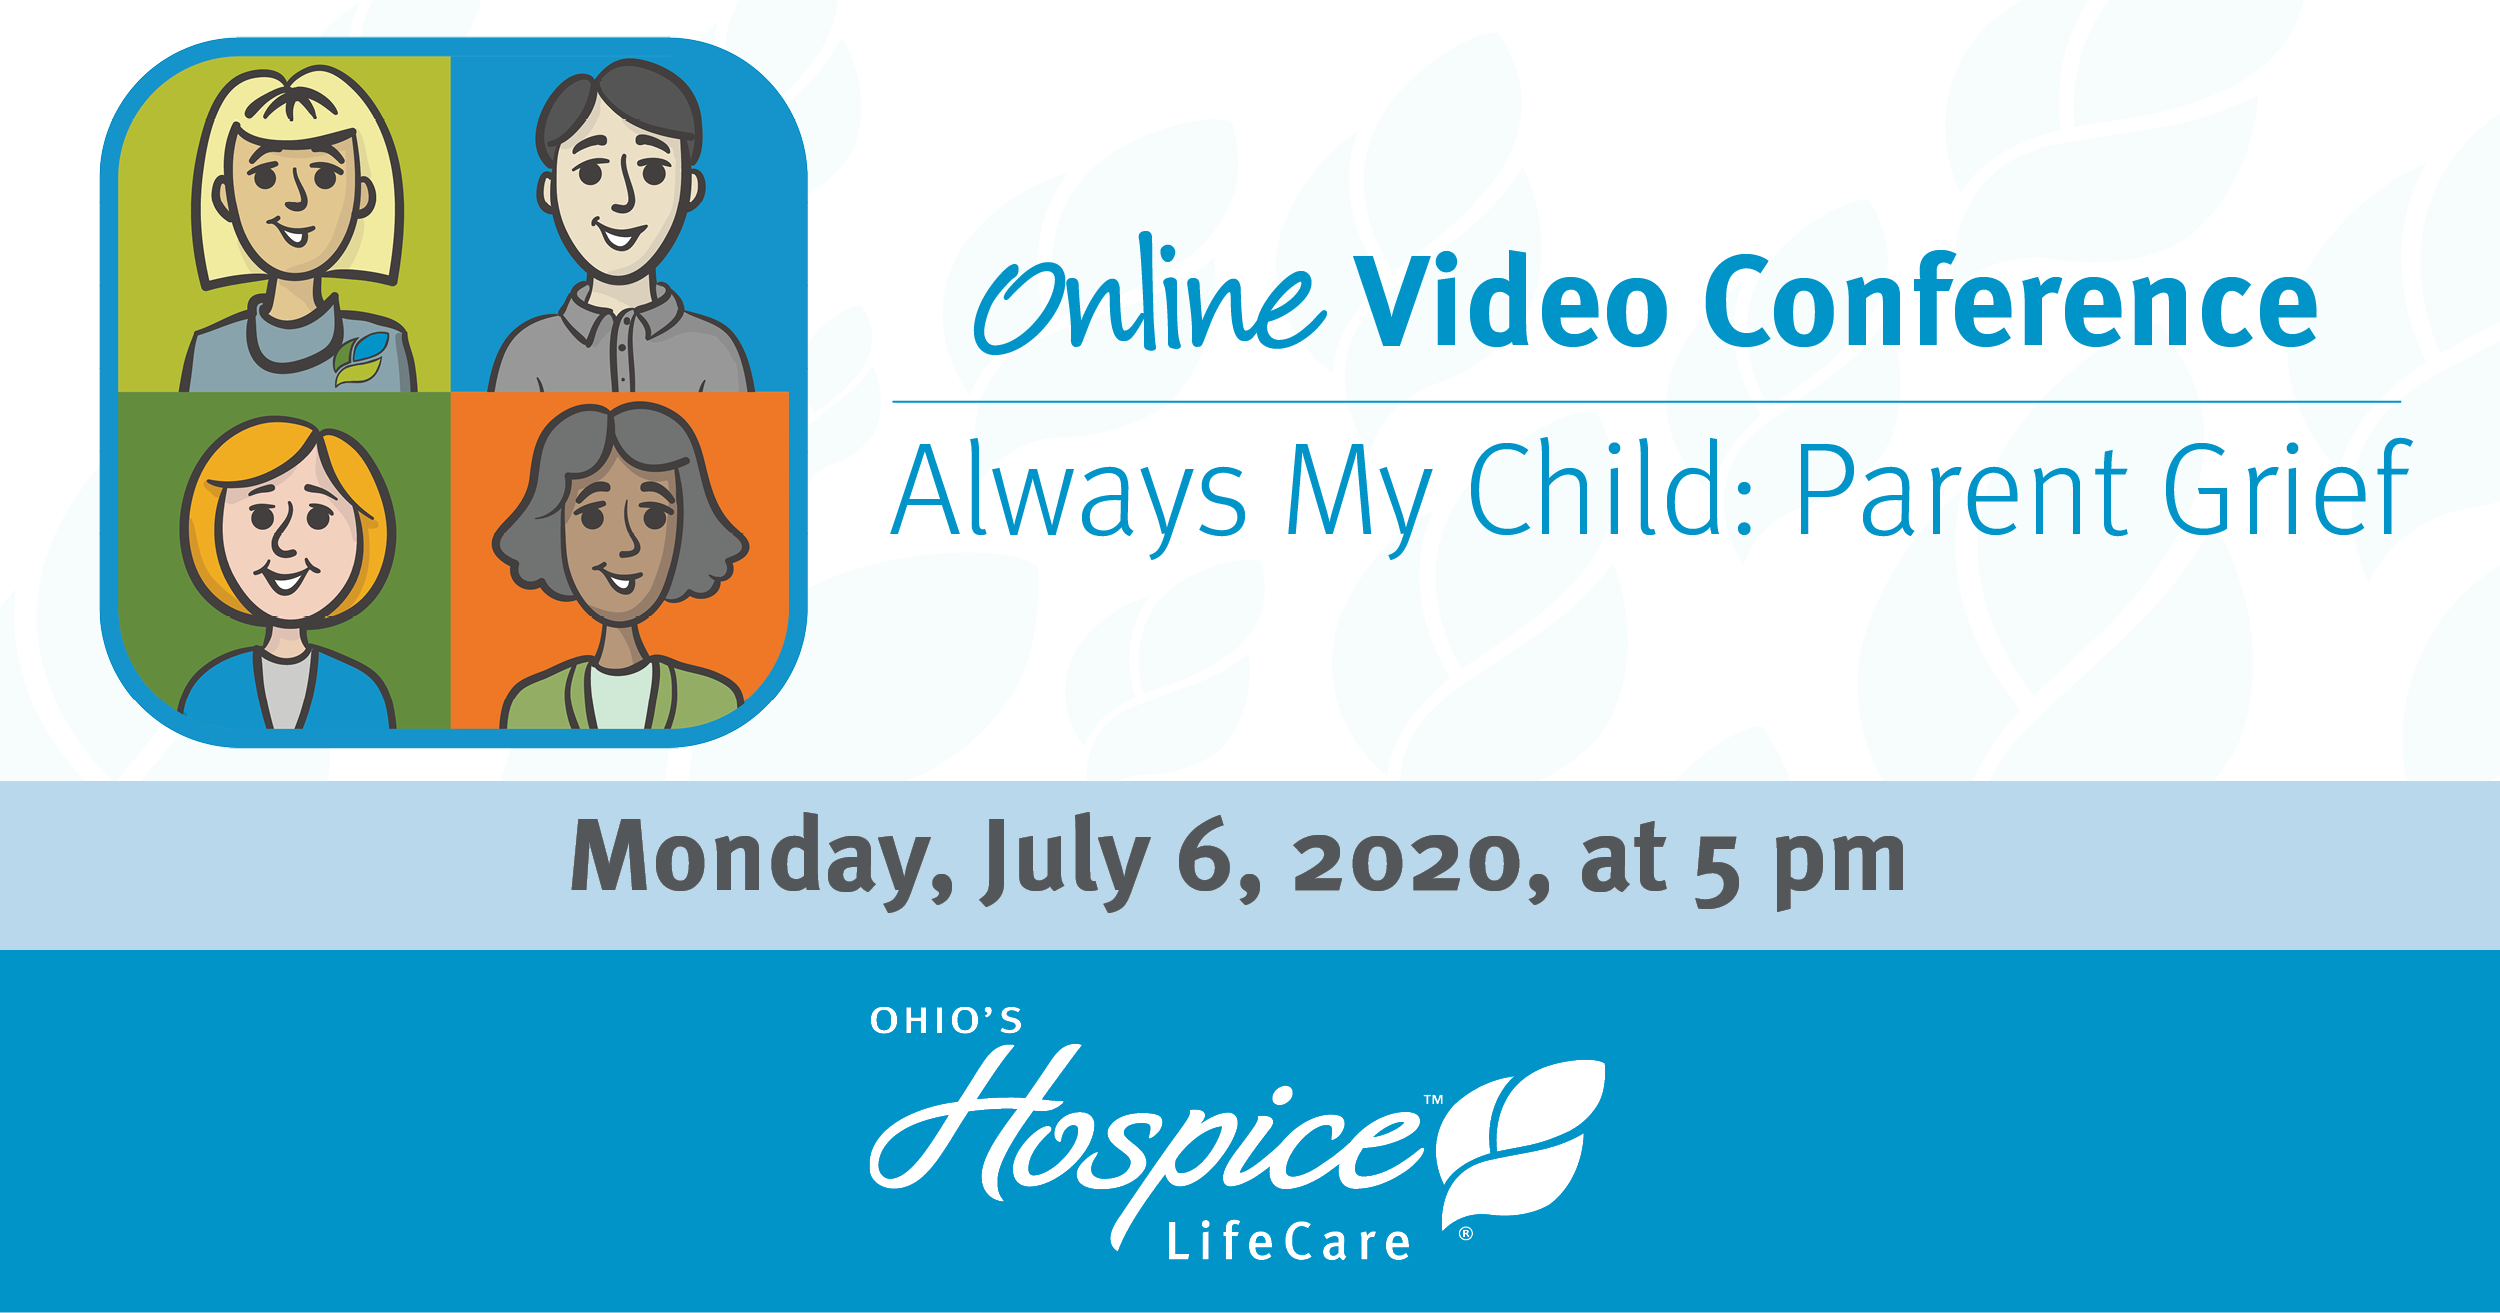 Ohio's Hospice LifeCare Offers Online Video Conference – Always My Child: Parent Grief